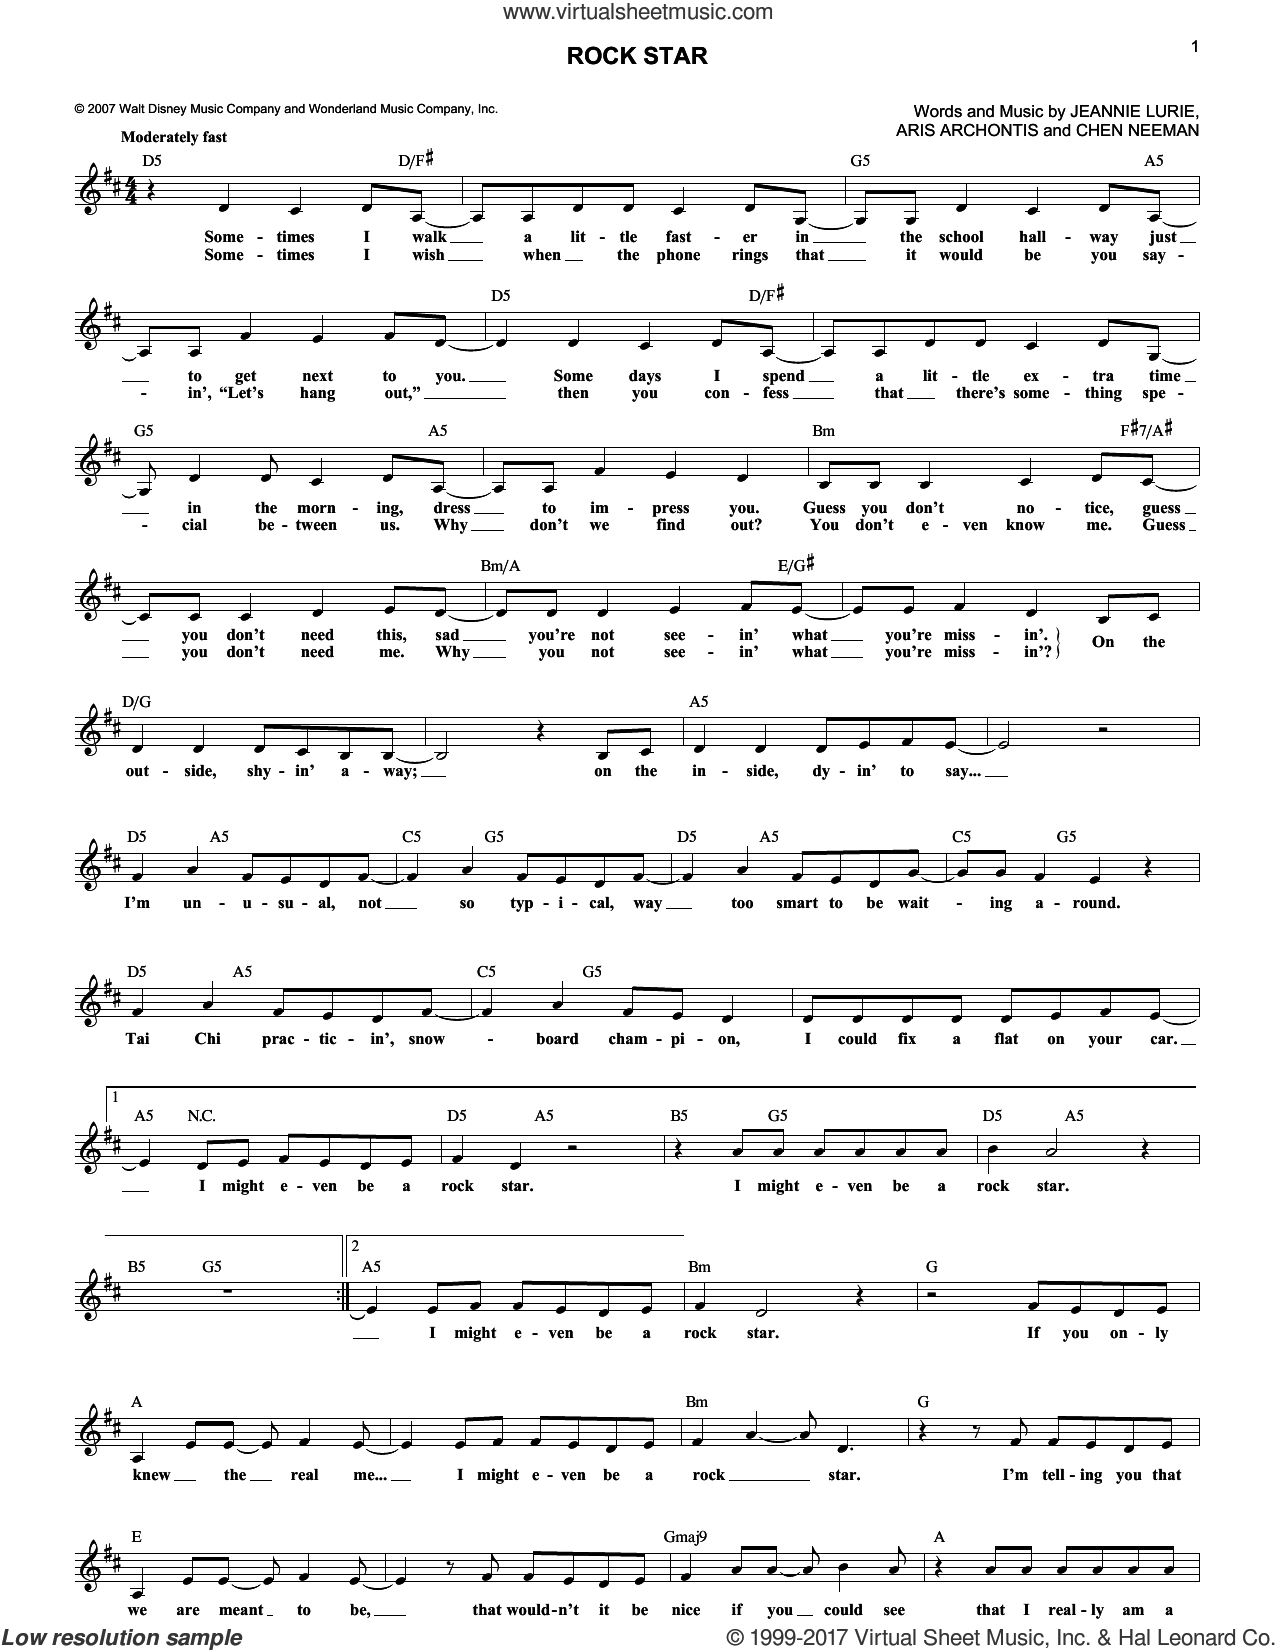 Rock Star sheet music for voice and other instruments (fake book) by Hannah Montana, Aris Archontis, Chen Neeman and Jeannie Lurie, intermediate skill level